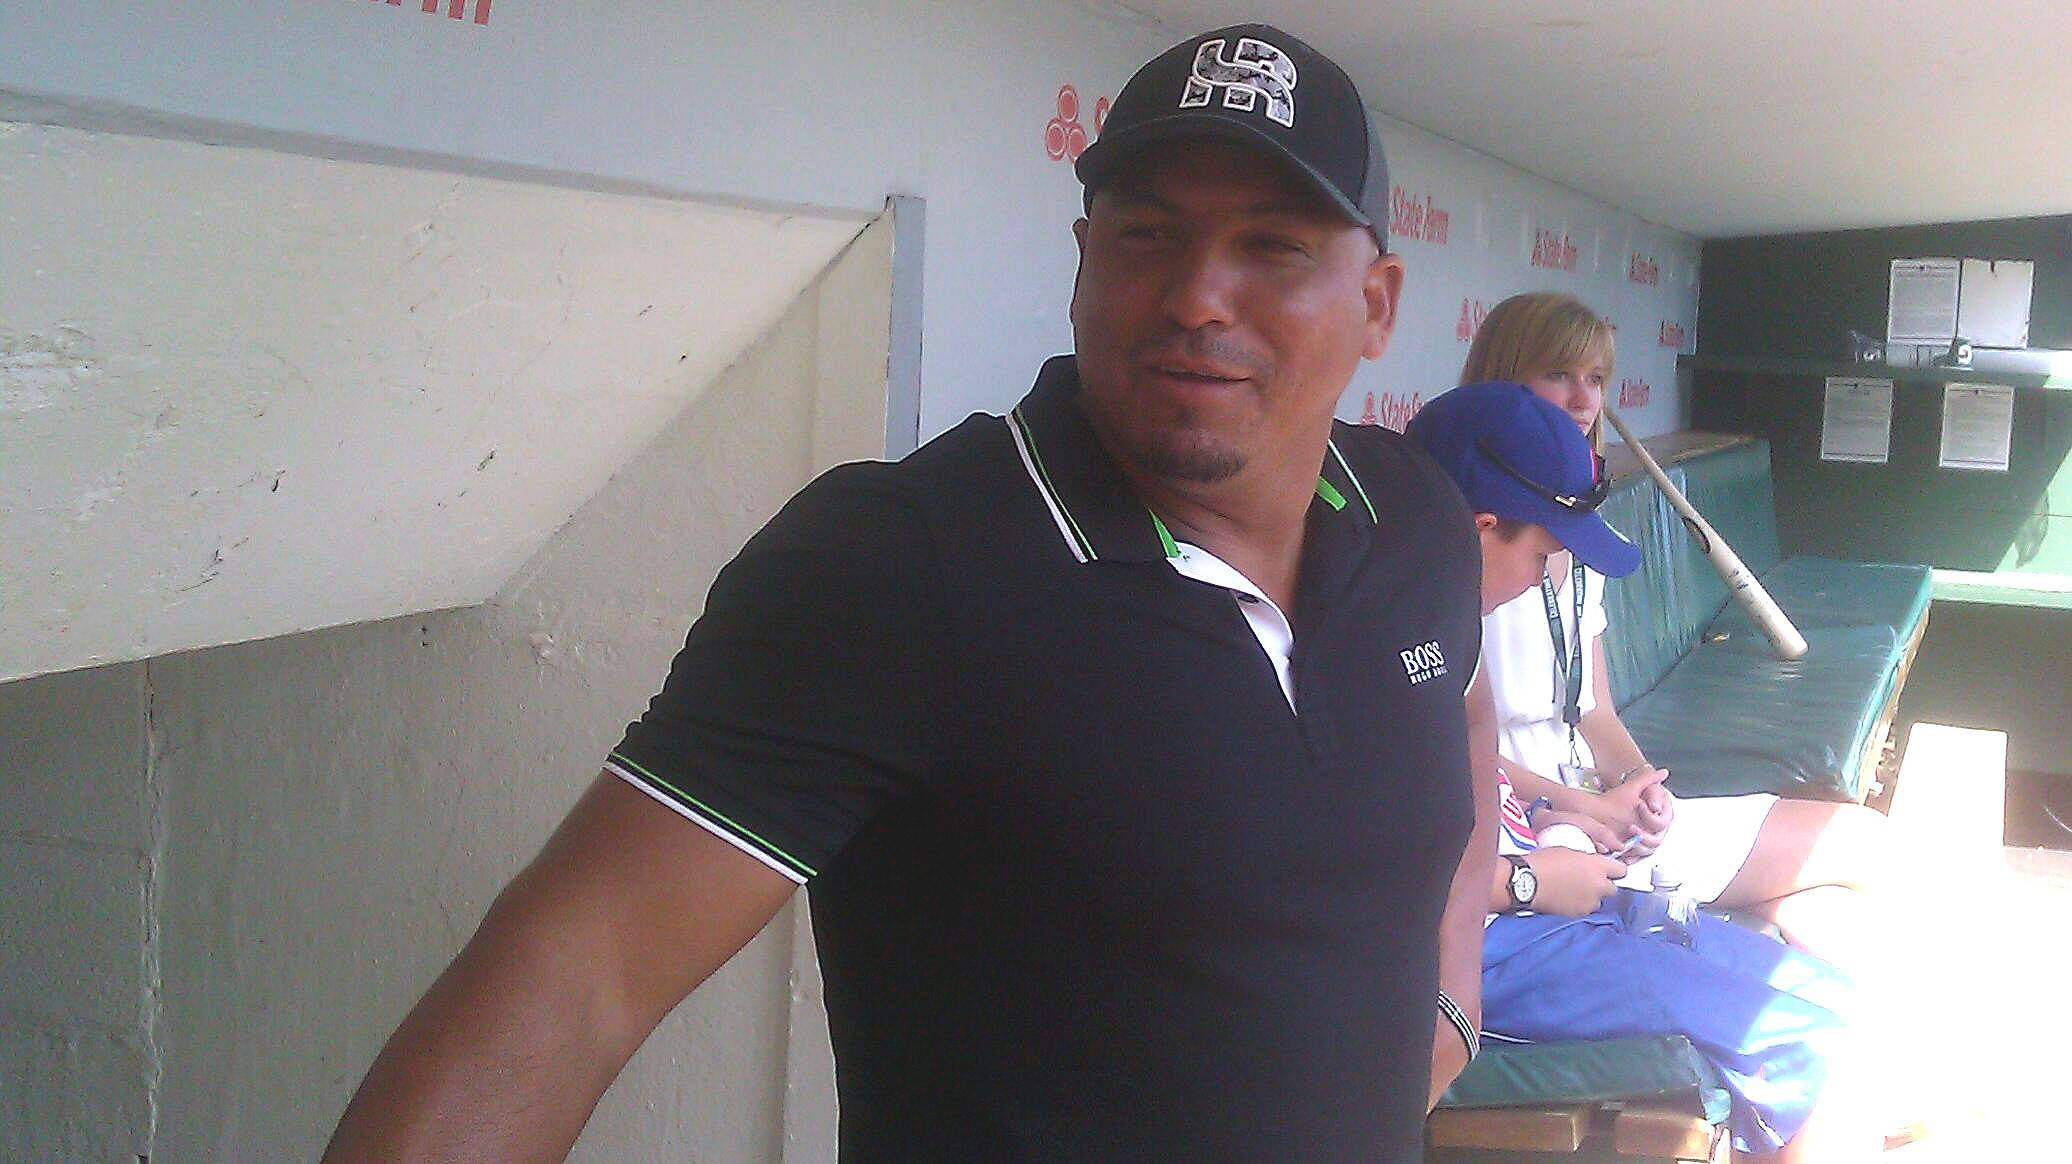 Former Cubs pitcher Carlos Zambrano visited his old team on Friday at Wrigley Field. Zambrano also was in town to take part in a charity softball game in Schaumburg on Saturday.